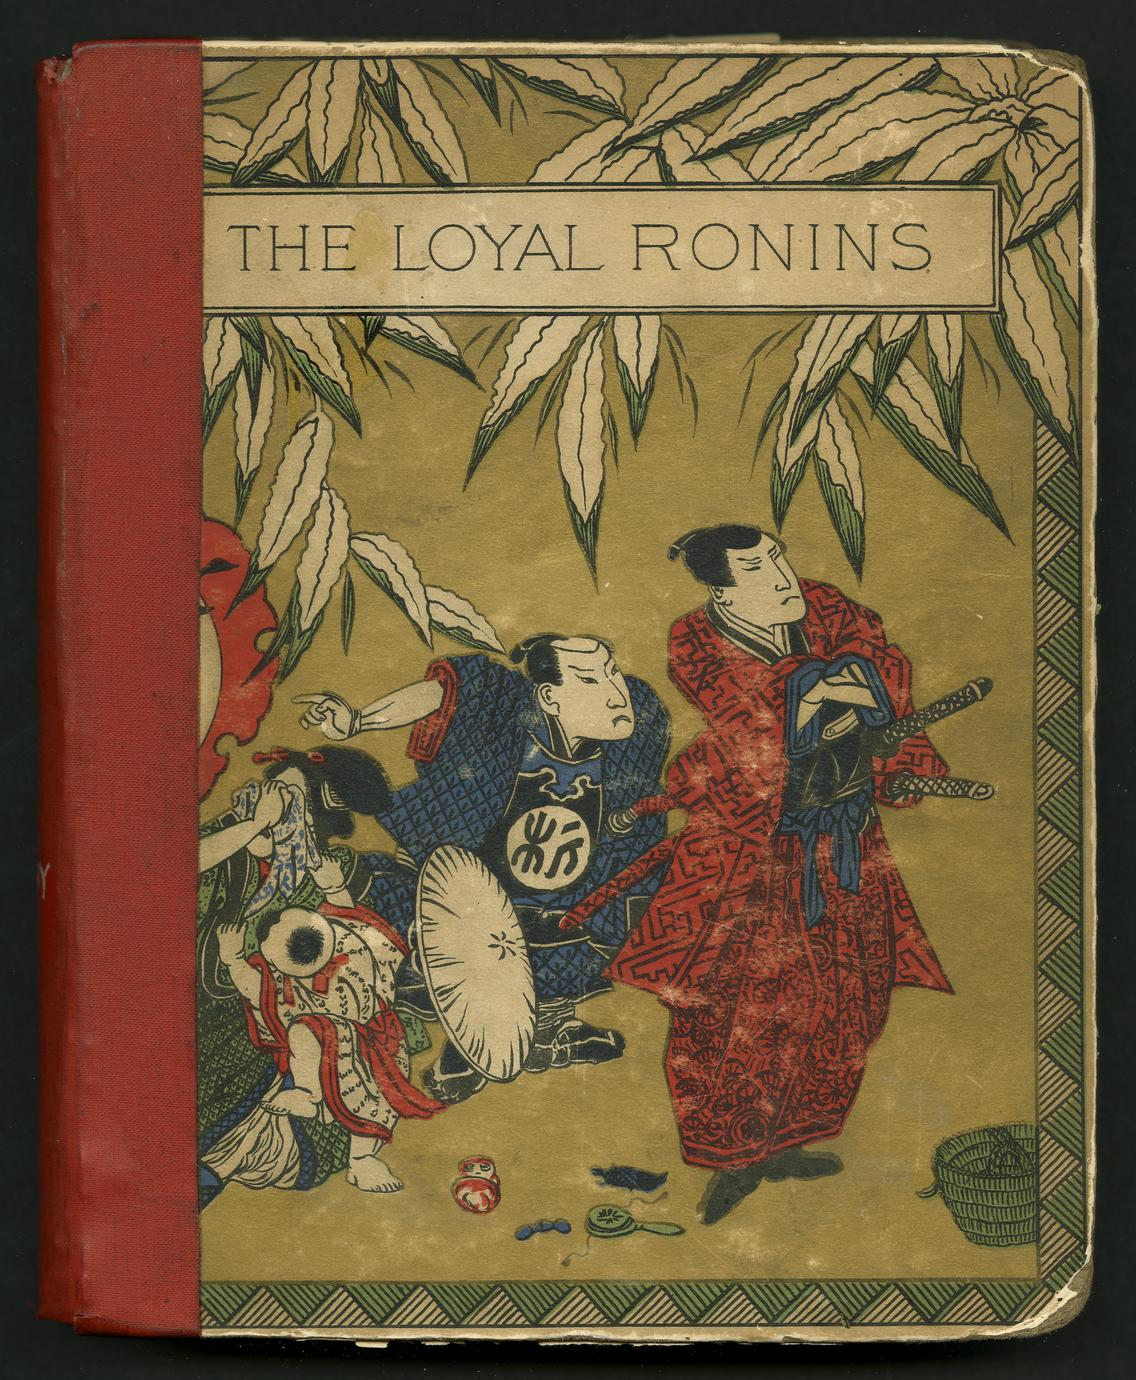 The loyal ronins, an historical romance, translated from the Japanese (1 of 2)